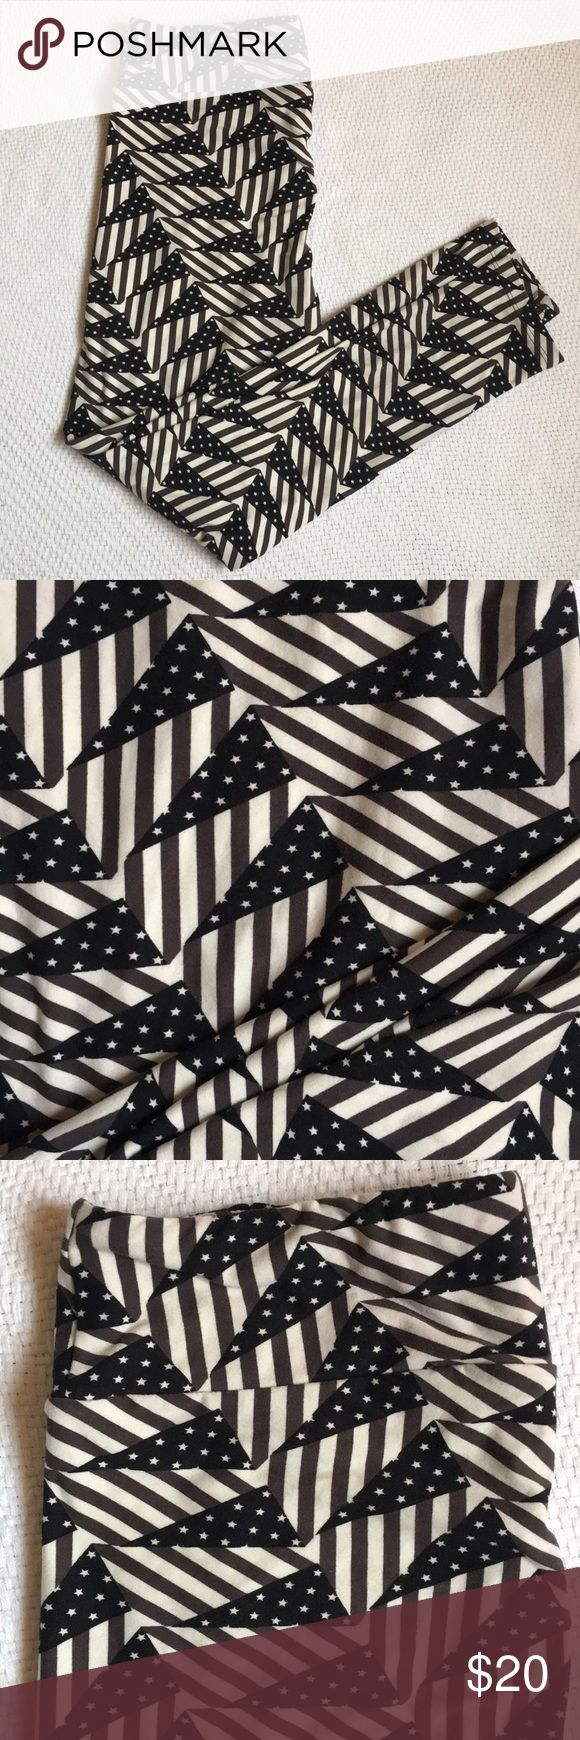 LuLaRoe Leggings TC brand new (LuLaRoe does not put tags on leggings)! from 2017 americana collection. hard-to-find. black and white american flag pattern; signature LuLaRoe buttery soft leggings. size 12-24 LuLaRoe Pants Leggings